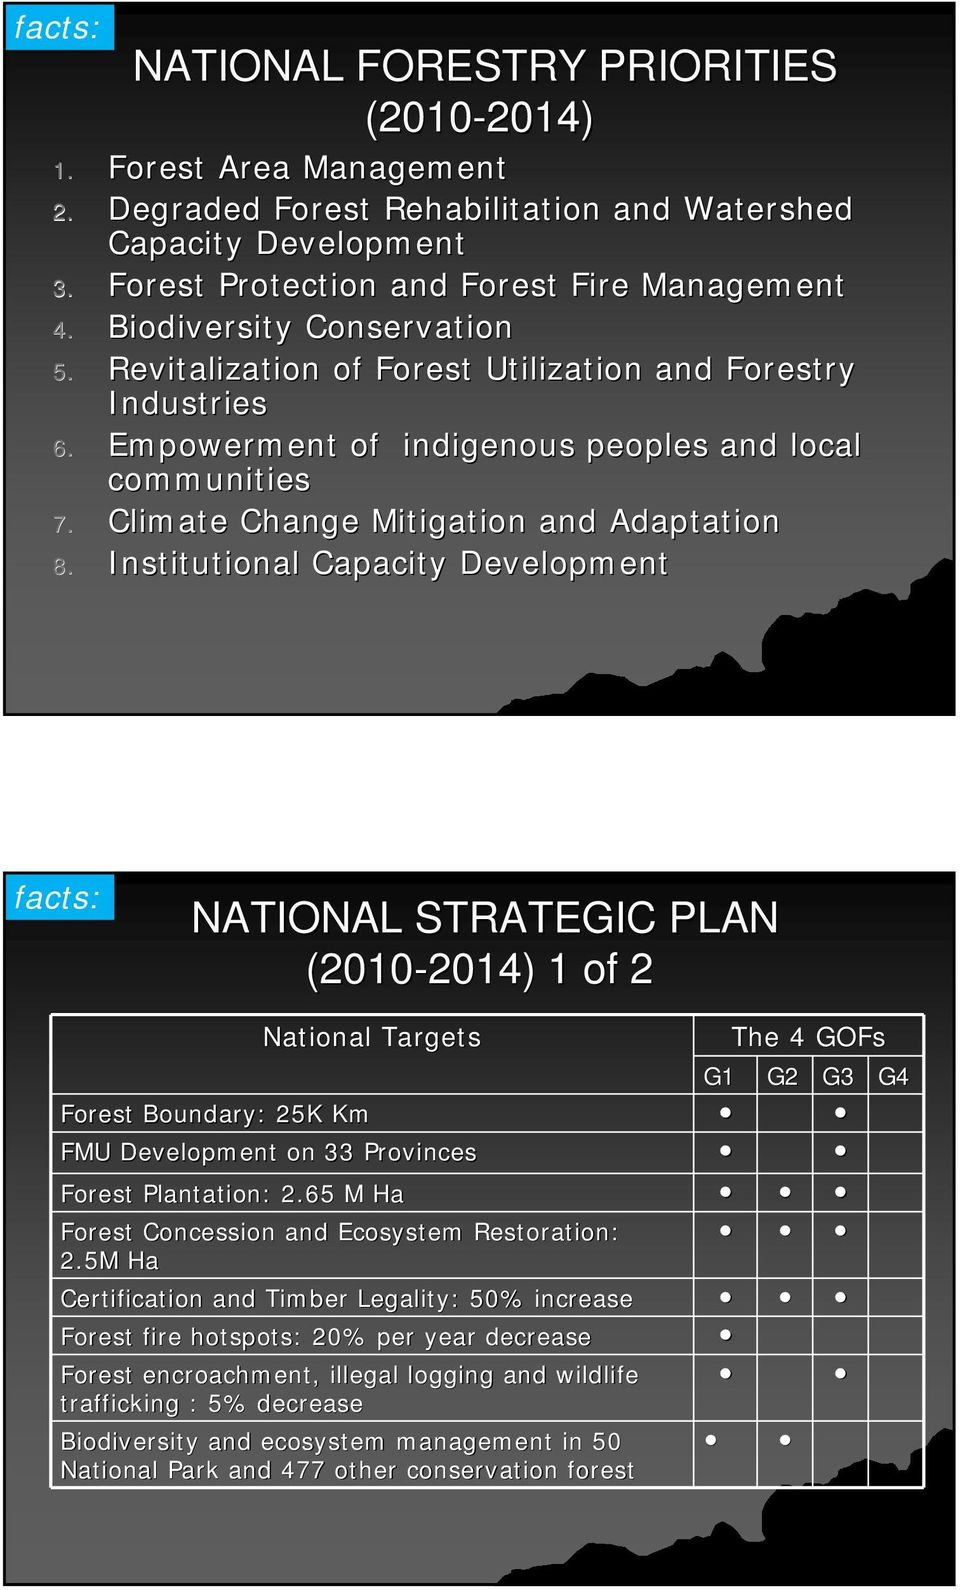 Institutional Capacity Development facts: NATIONAL STRATEGIC PLAN (2010-2014) 2014) 1 of 2 National Targets G1 The 4 GOFs G2 G3 Forest Boundary: 25K Km FMU Development on 33 Provinces Forest